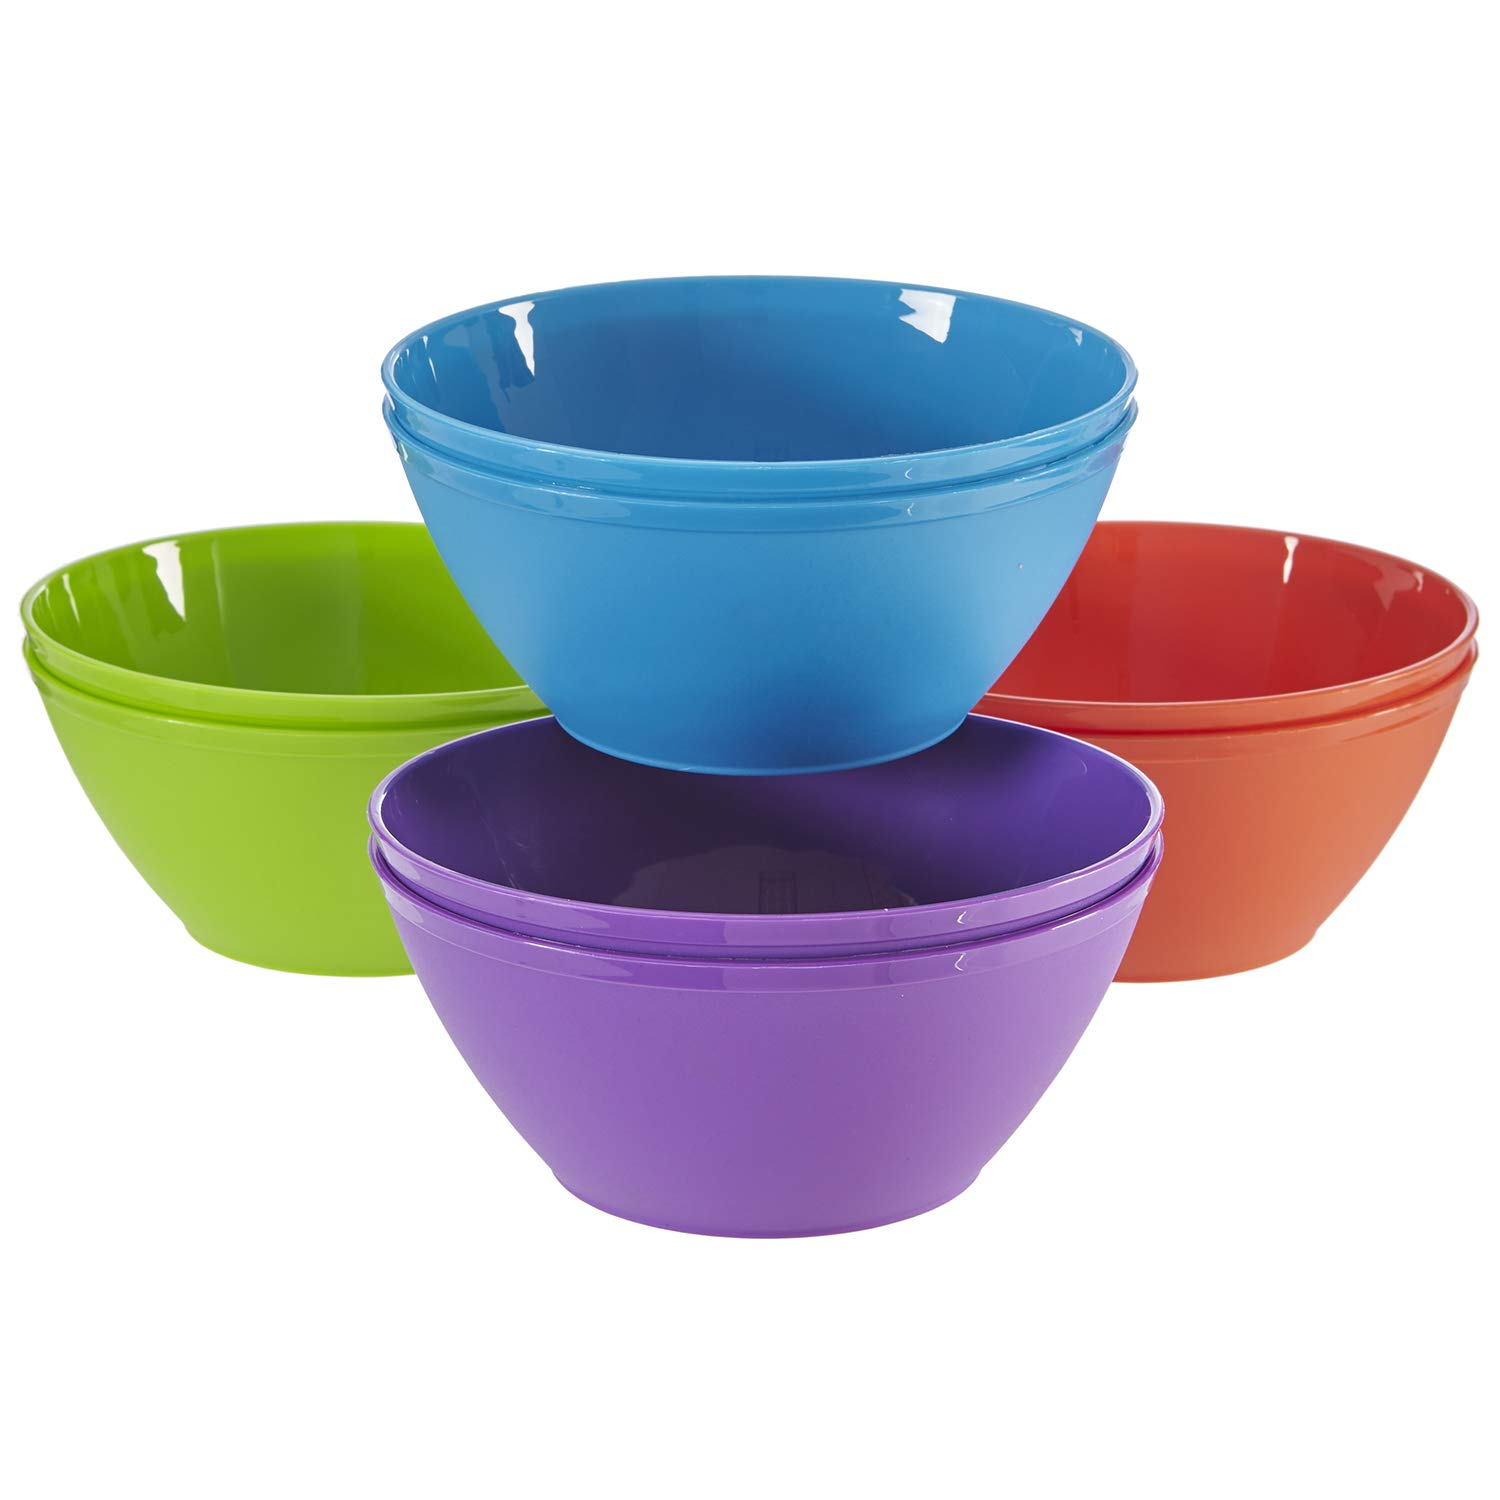 Fresco 6-inch Plastic Bowls for Cereal or Salad | set of 8 in 4 Classic Colors